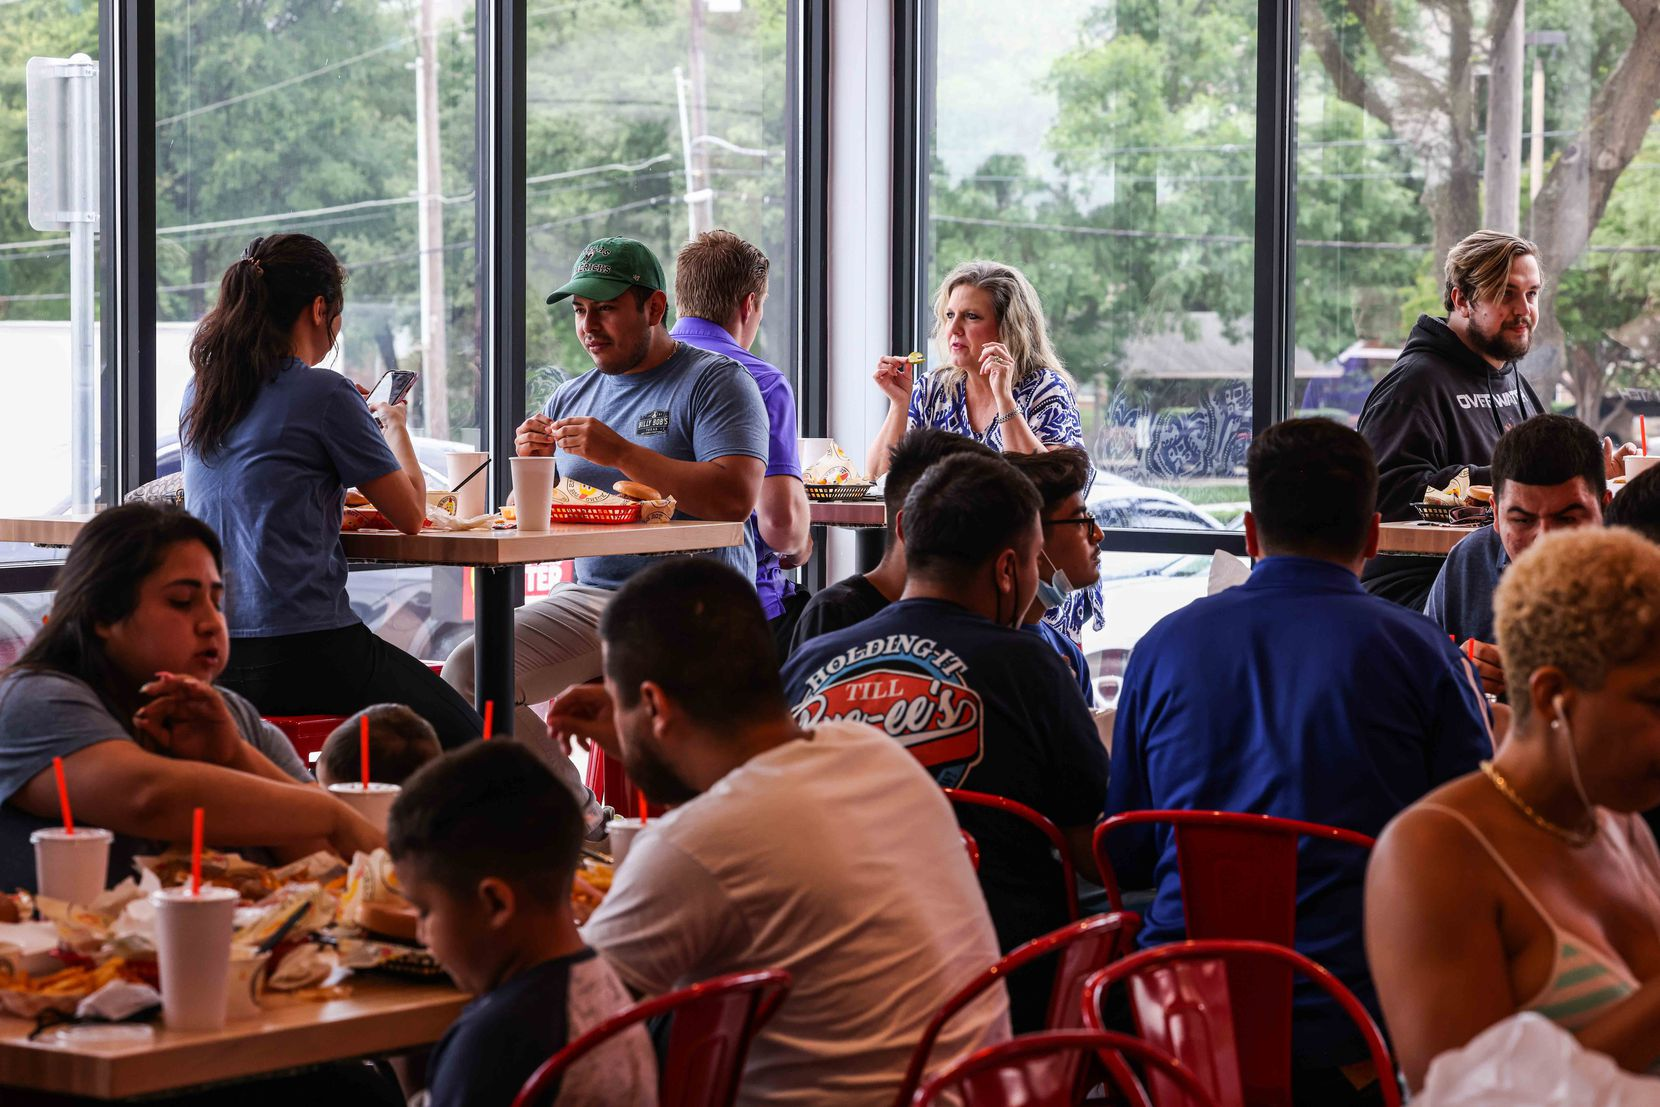 On opening day, Friday, May 28, 2021, Dave's Hot Chicken in Dallas was packed and the drive-through was busy.